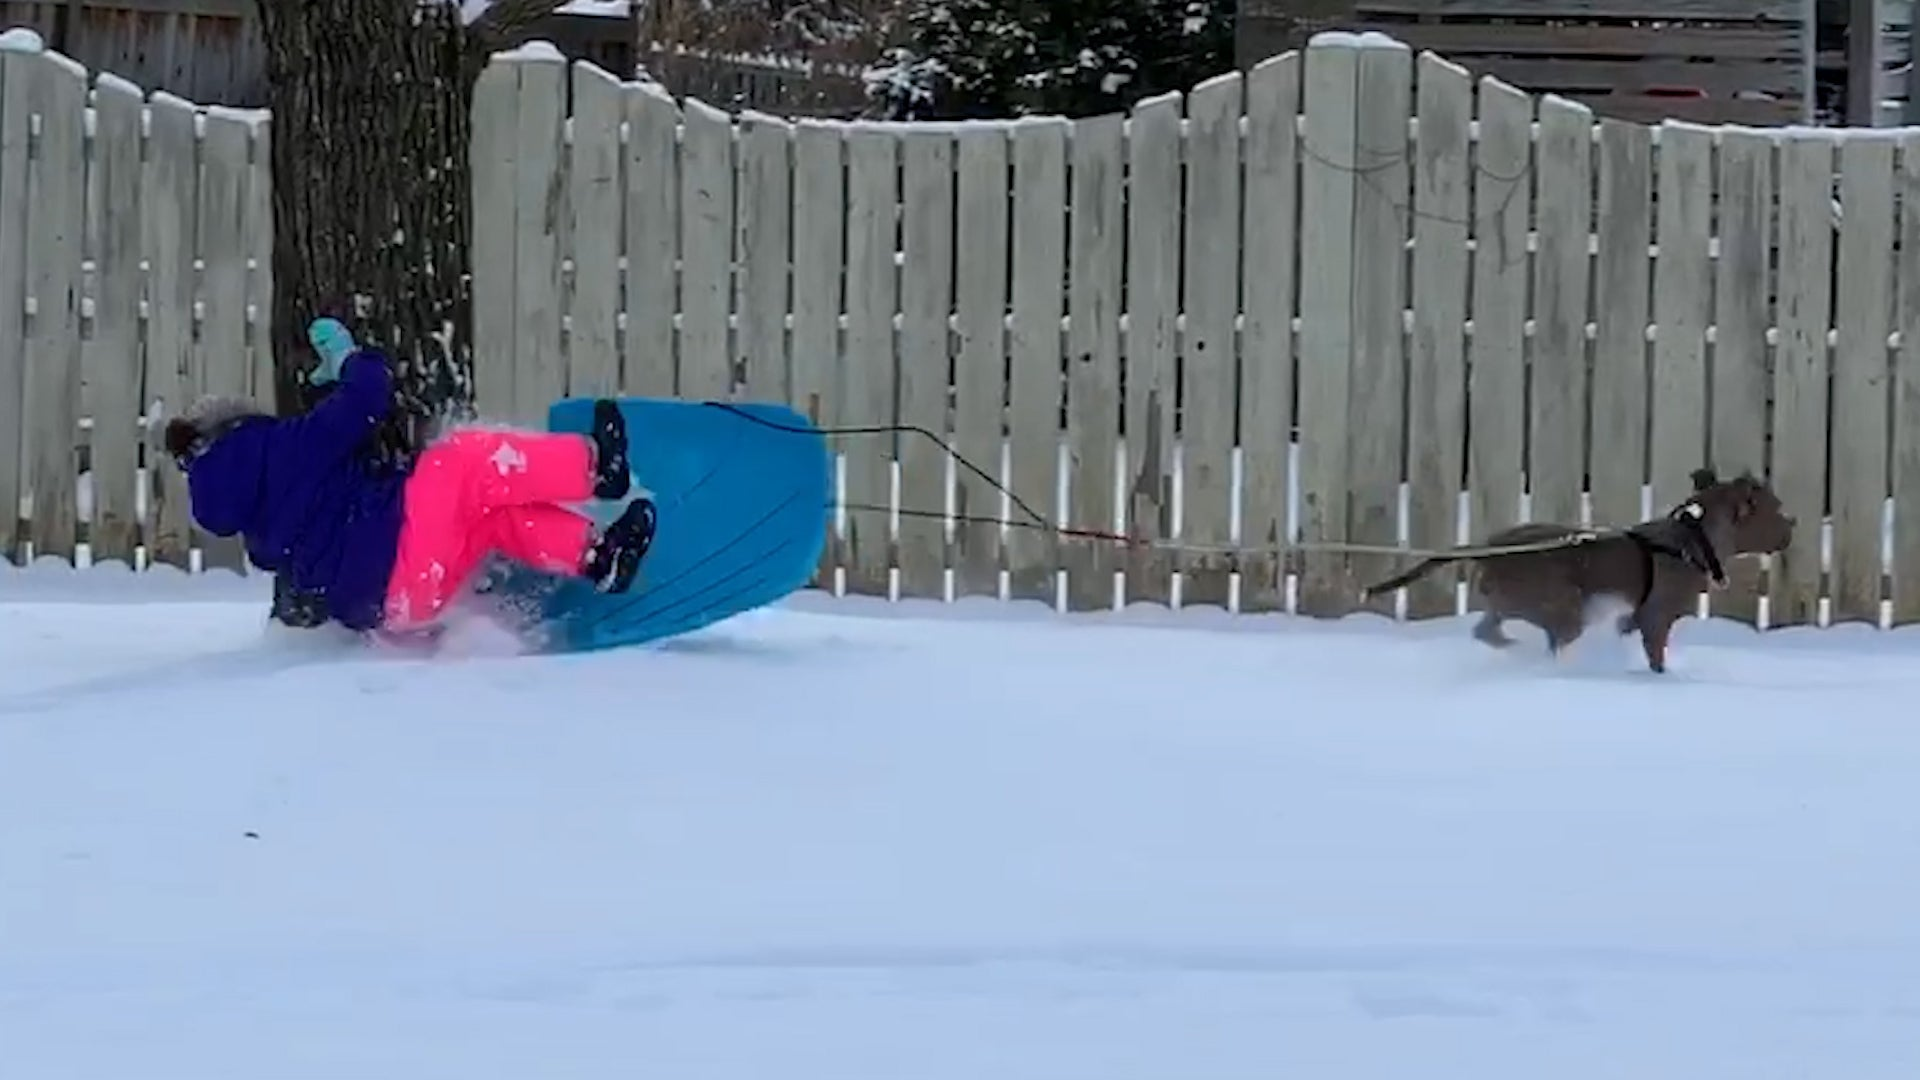 Pet Dog Playfully Pulls Girl in Sled